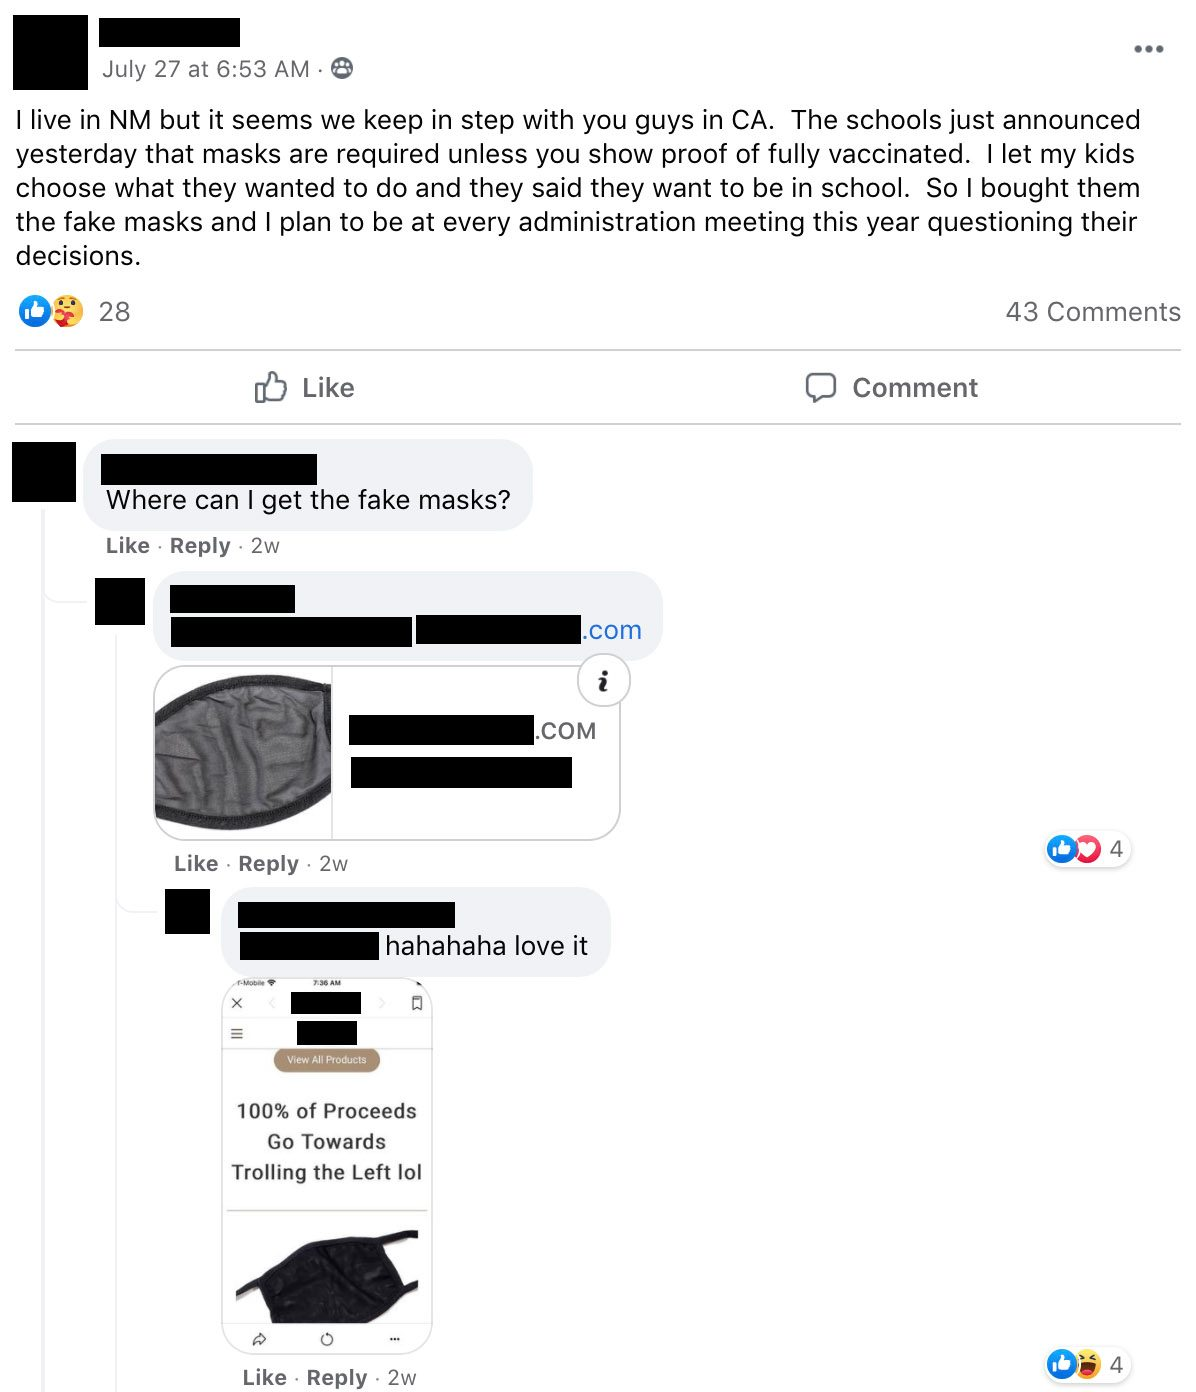 A Facebook meme pushed COVID denialism about overwhelmed hospitals in Florida.